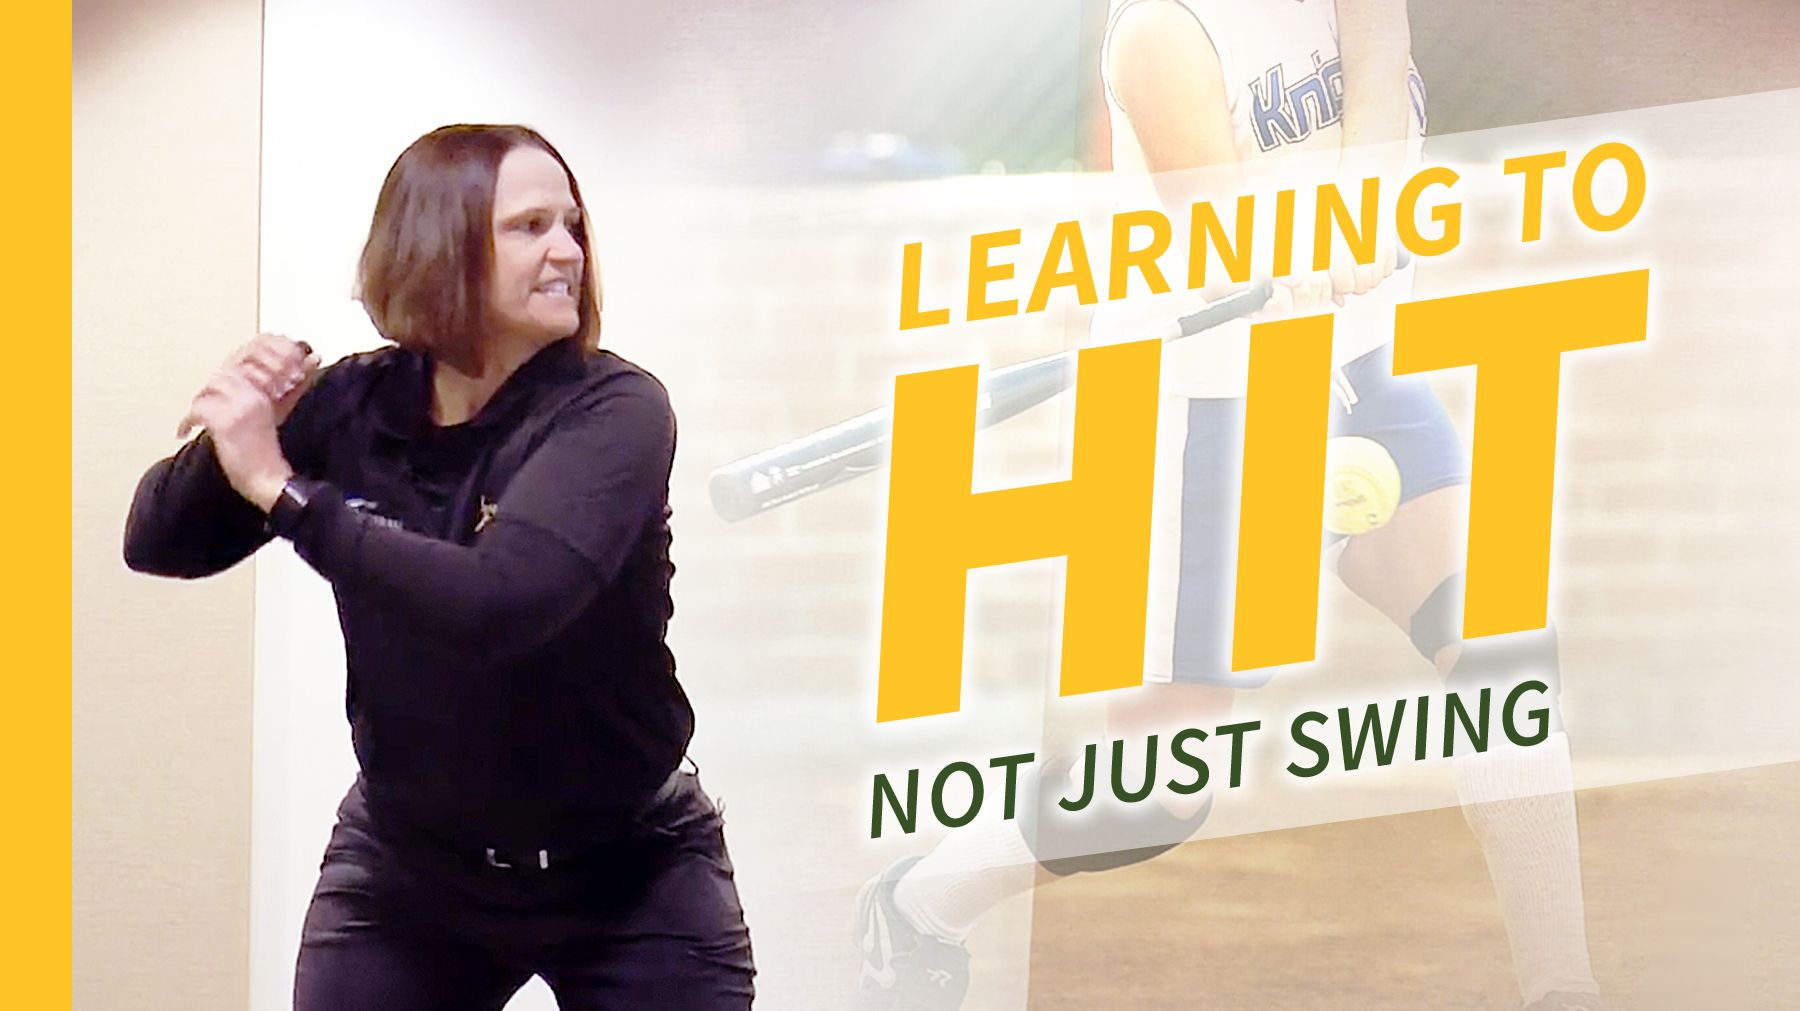 Hitting Learning to hit, not just swing Game tester